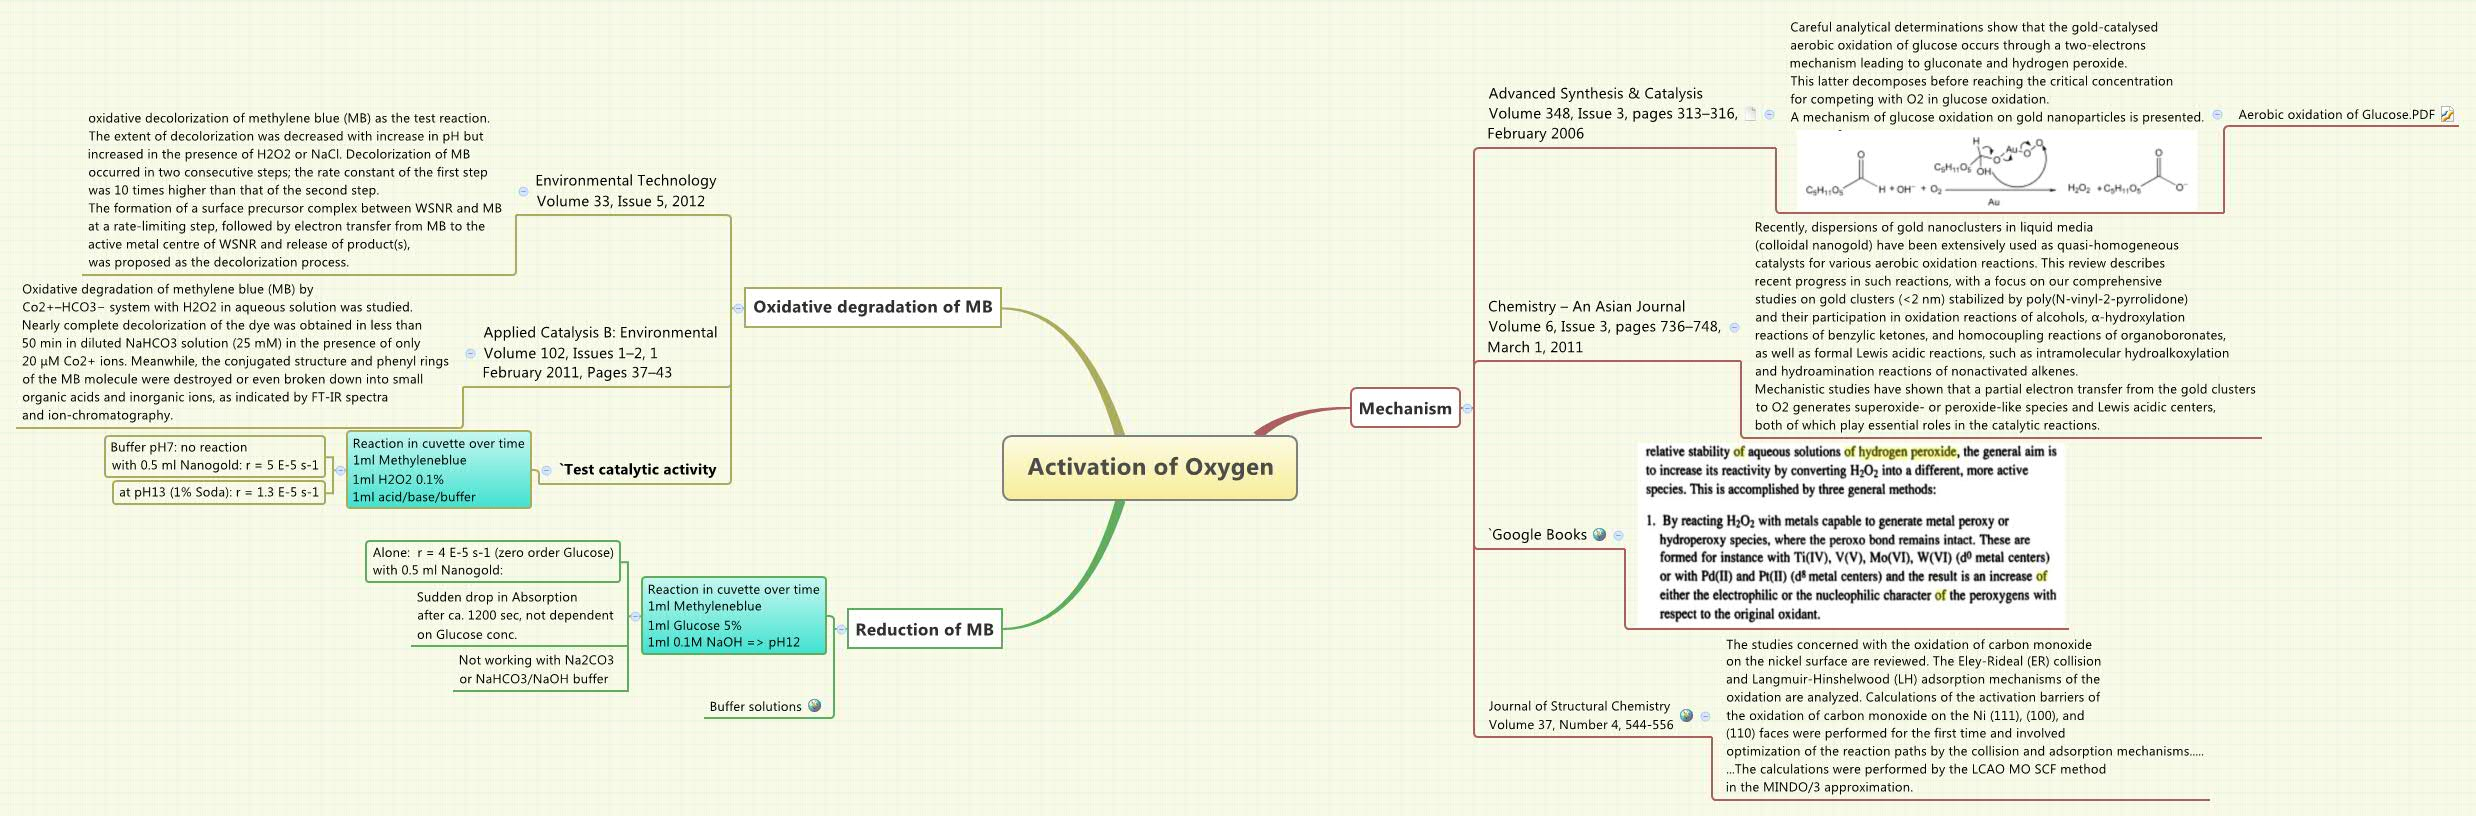 Activation of Oxygen - XMind - Mind Mapping Software